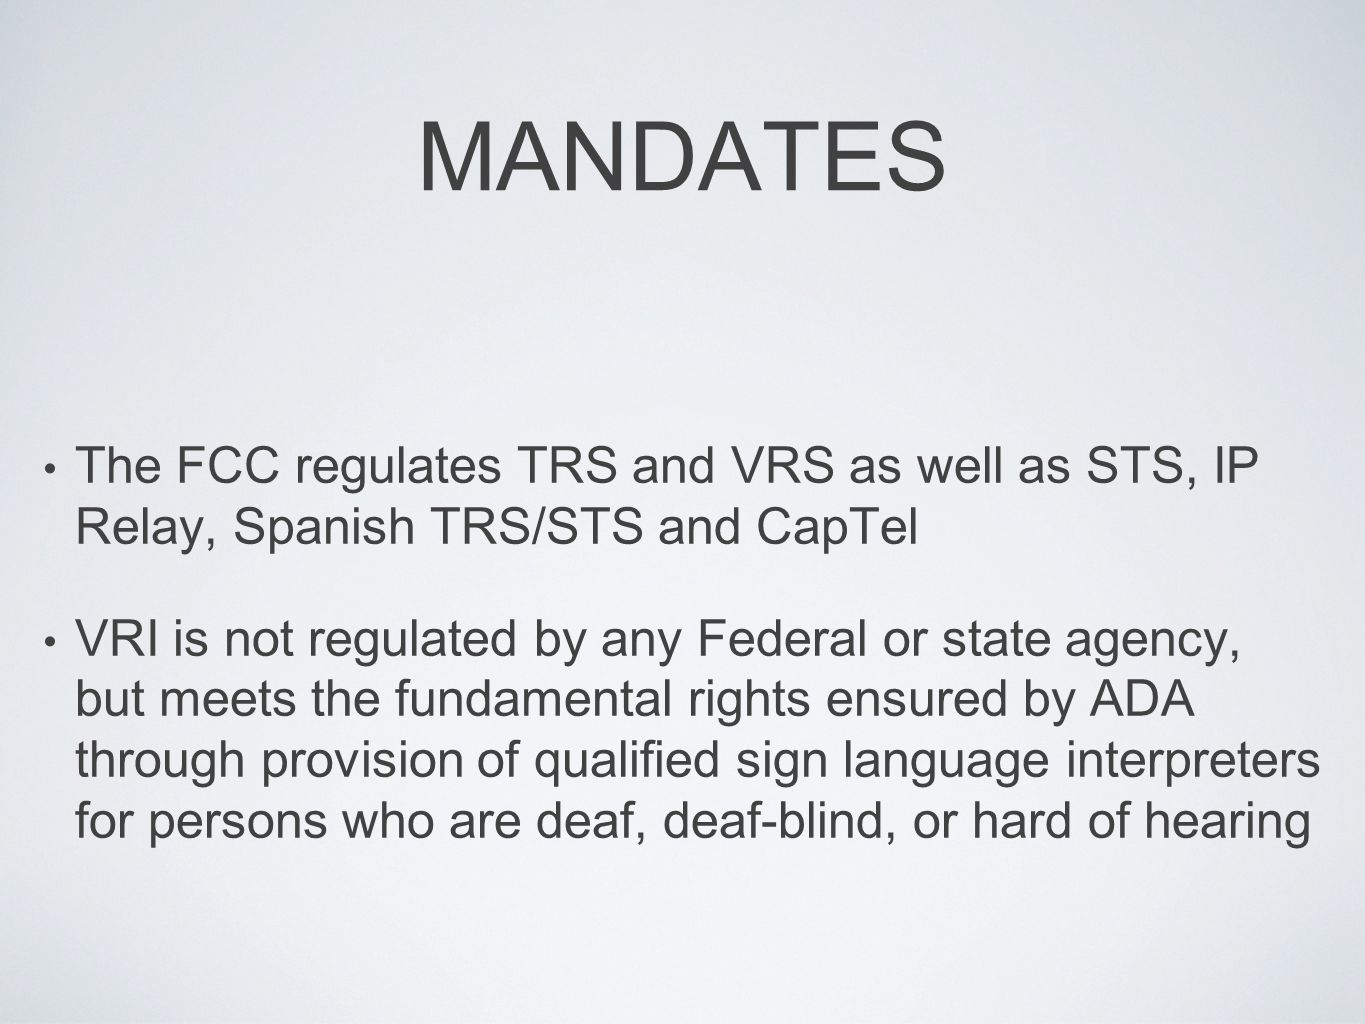 MANDATES The FCC regulates TRS and VRS as well as STS, IP Relay, Spanish TRS/STS and CapTel.